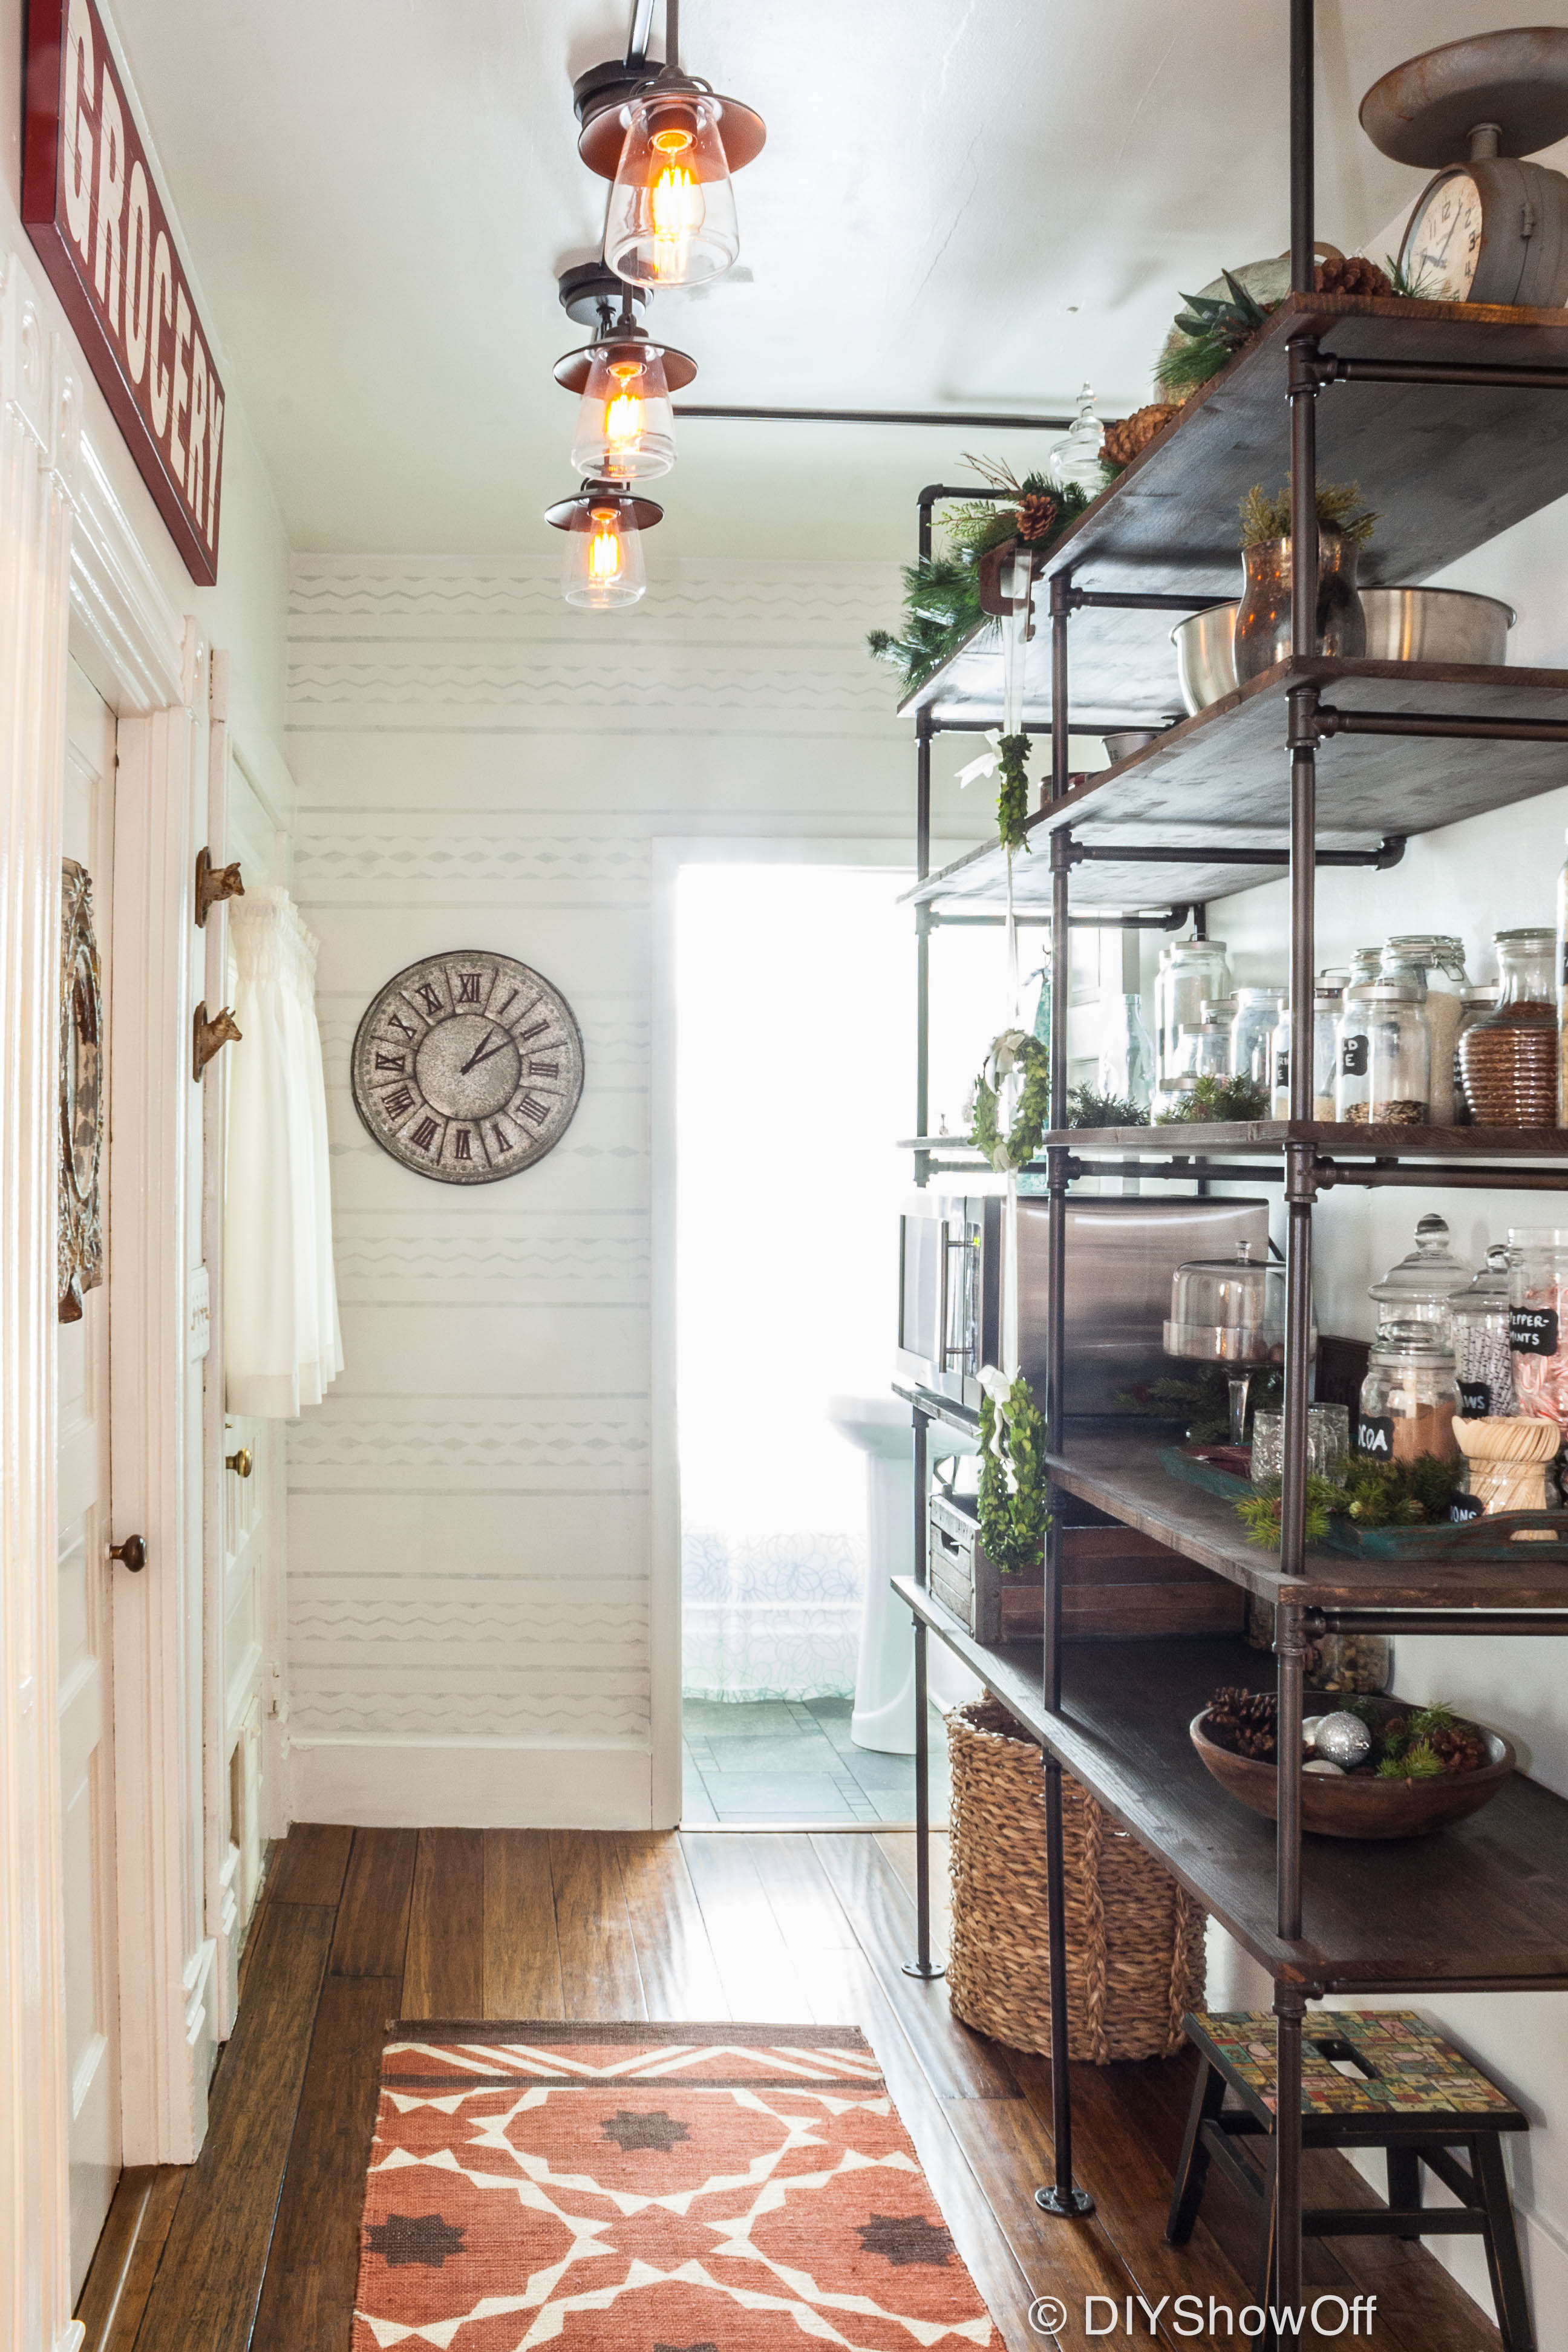 Pantry before and after diy show off diy decorating and home diyshowoff open pantry solutioingenieria Images